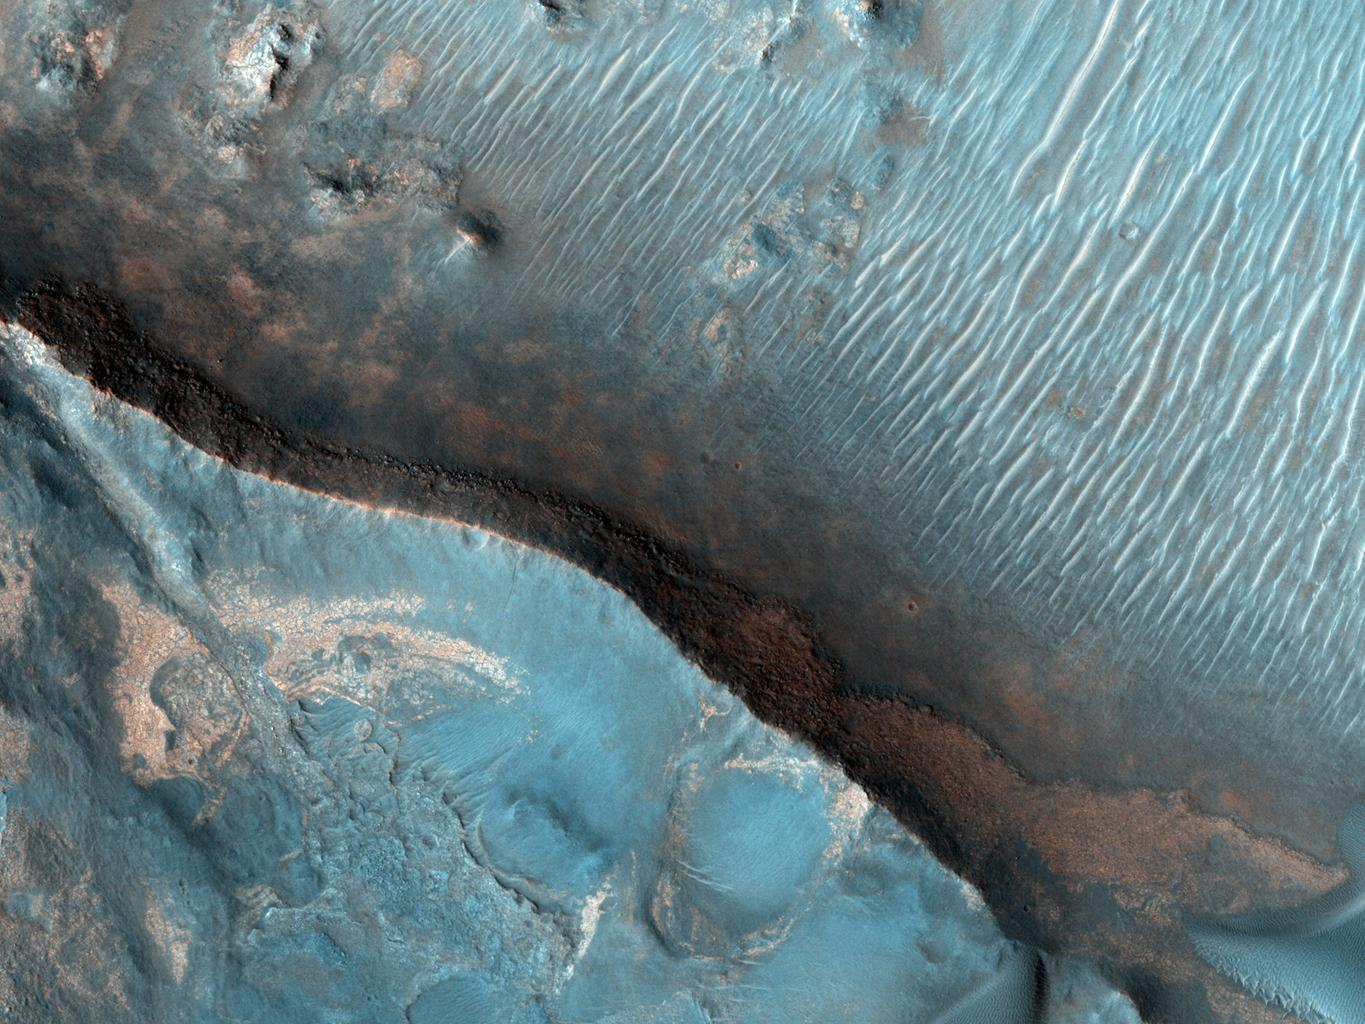 This image from NASA's Mars Reconnaissance Orbiter shows Nili Fossae region of Mars, one of the largest exposures of clay minerals, and a prime candidate landing site for Mars Science Laboratory rover, Curiosity.